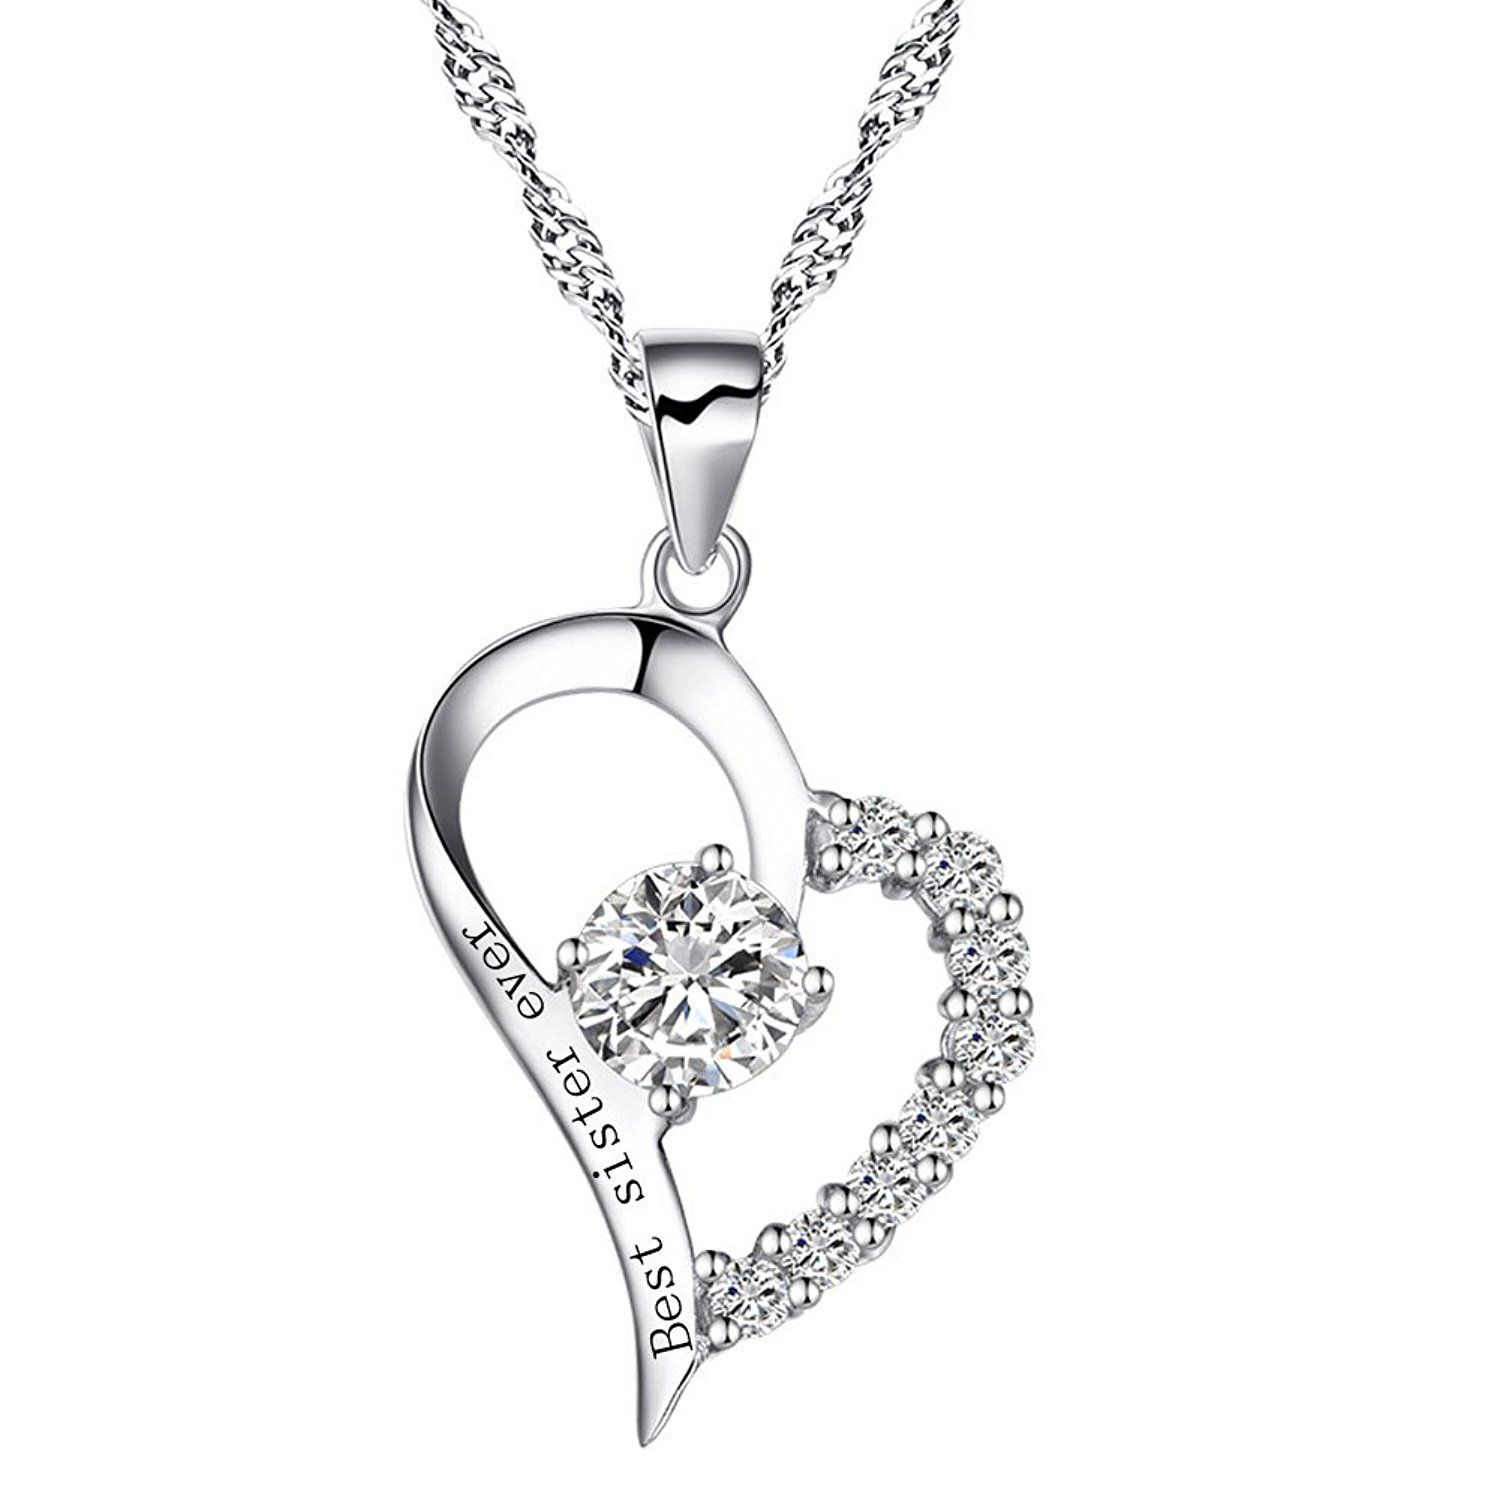 Elements Silver Women's 925 Sterling Silver Diamond Cut Cubic Zirconia Black Teardrop Pendant Curb Chain UwzRDl